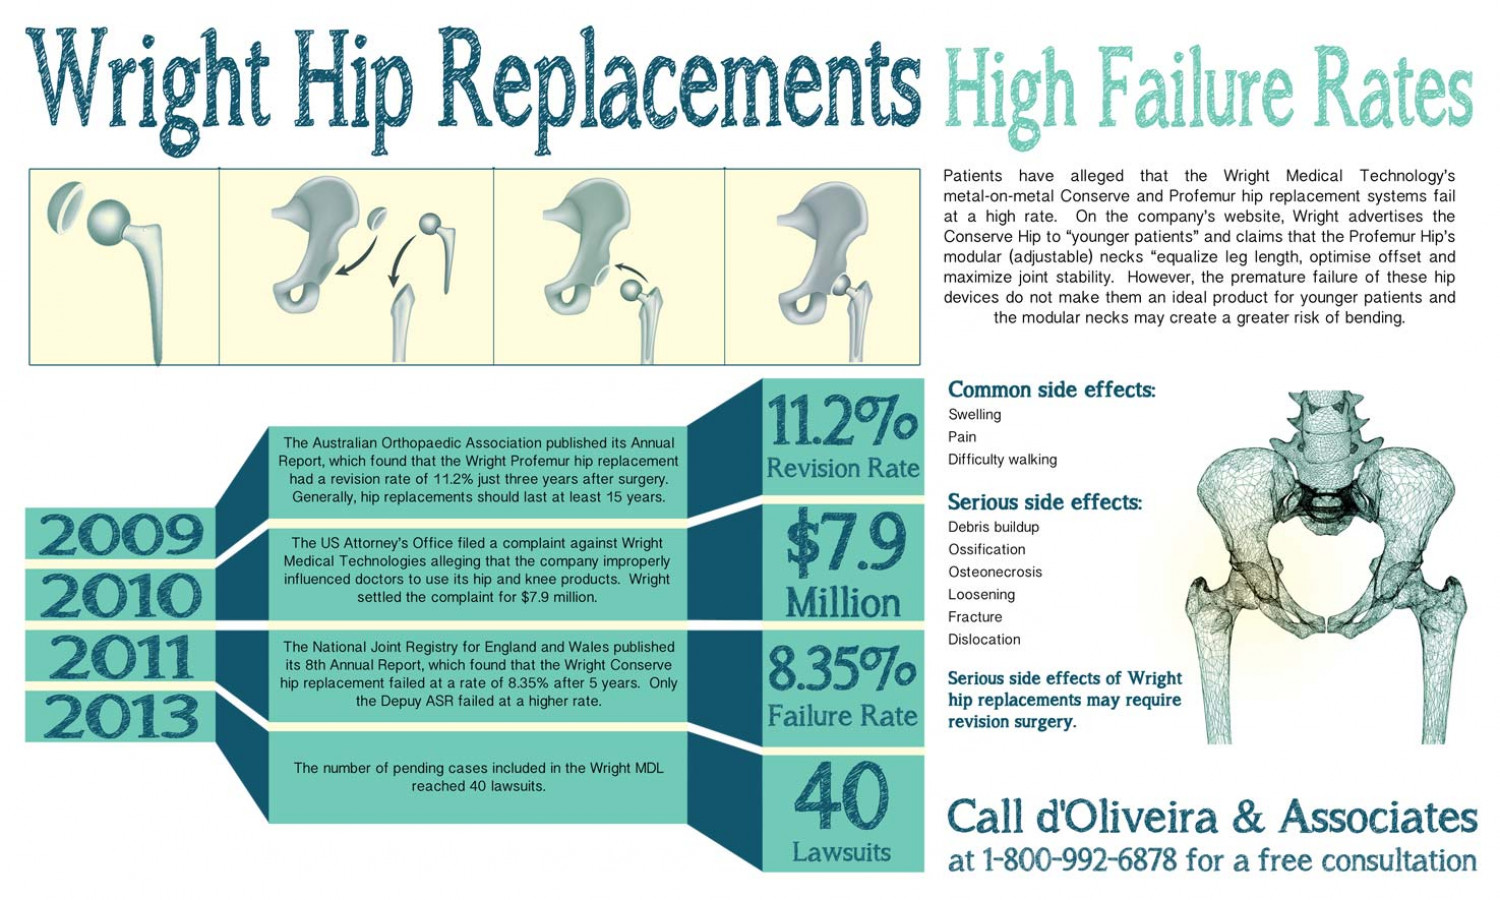 Wright Hip Replacements and High Failure Rates Infographic